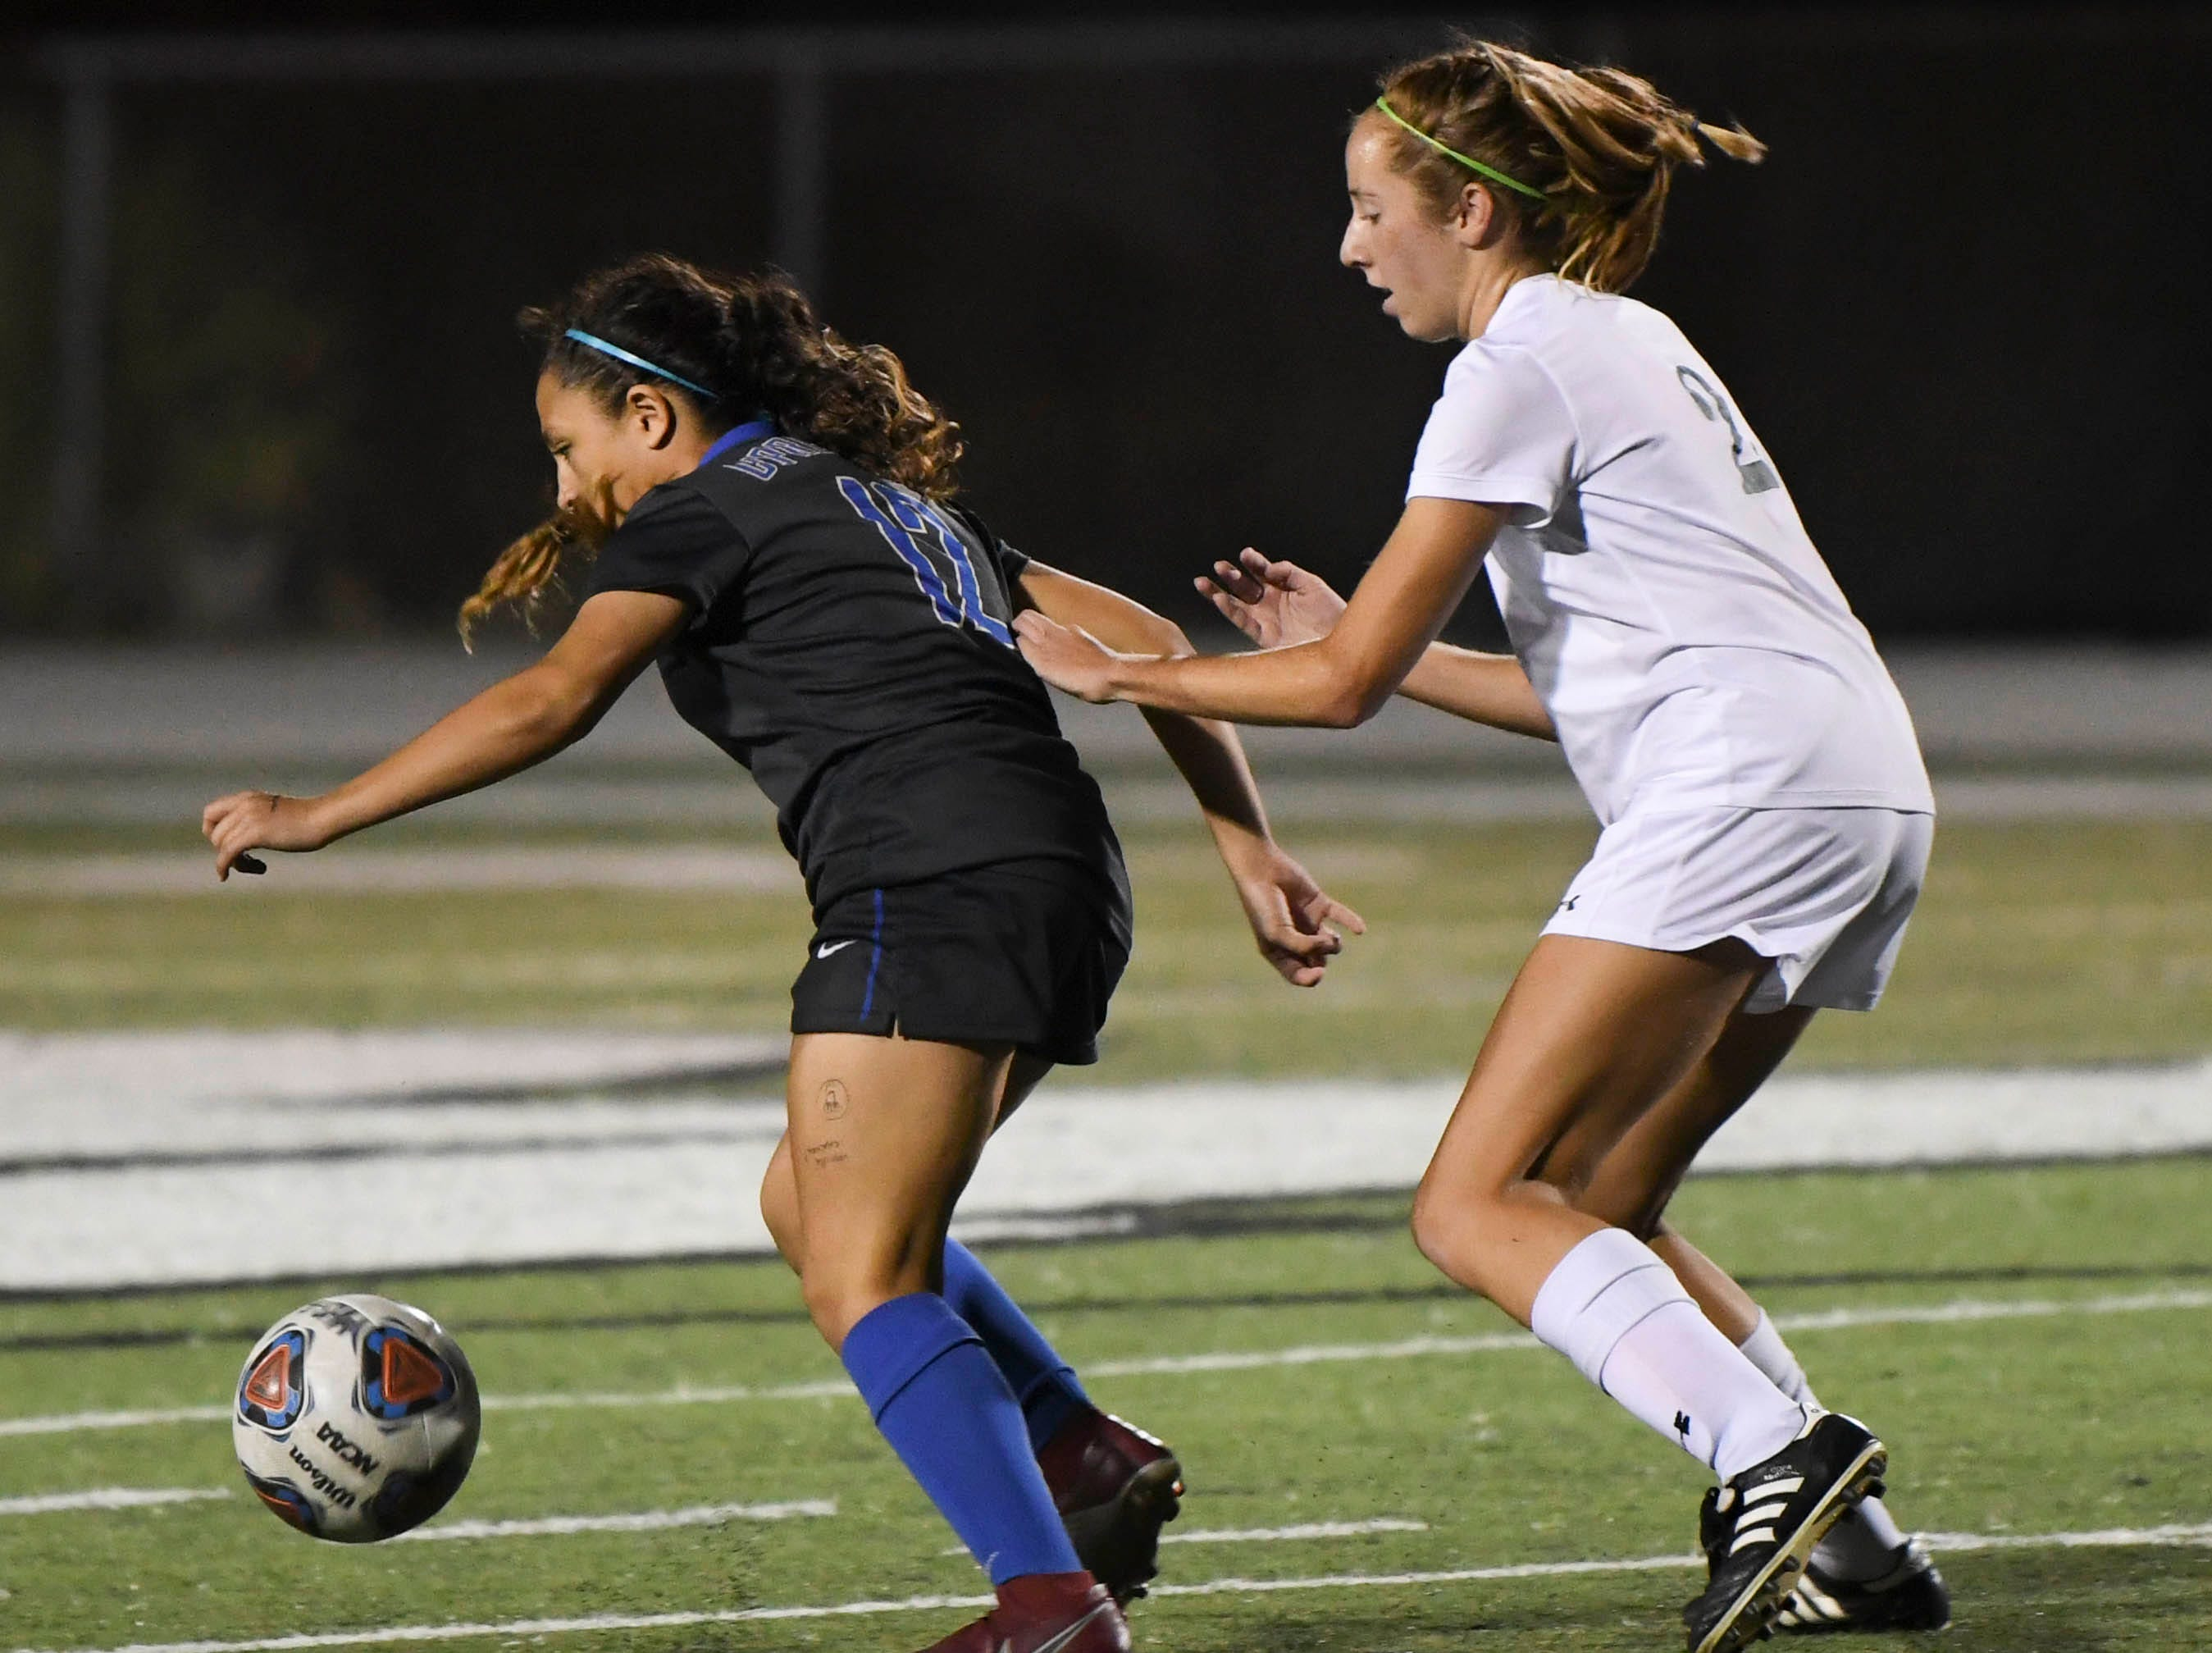 Melbourne's Lindsay Baldwin chases Barbara Garcia of Cypress Bay during Thursday's game in Melbourne.